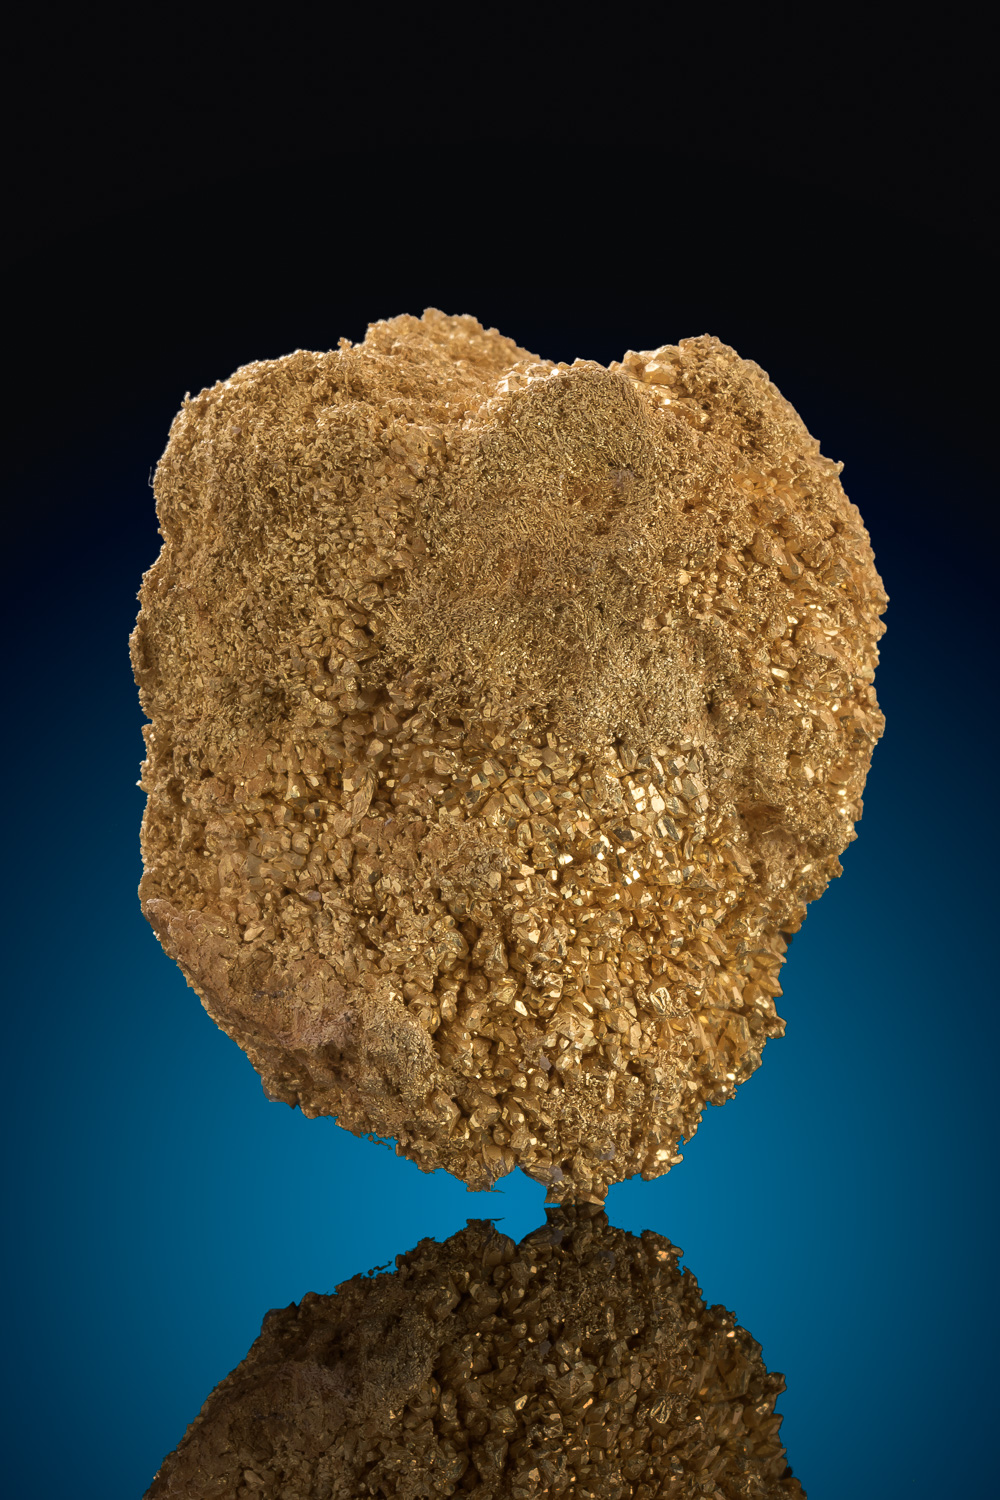 Large Round Gold Crystal Nugget - Round Mountain - 43.5 grams